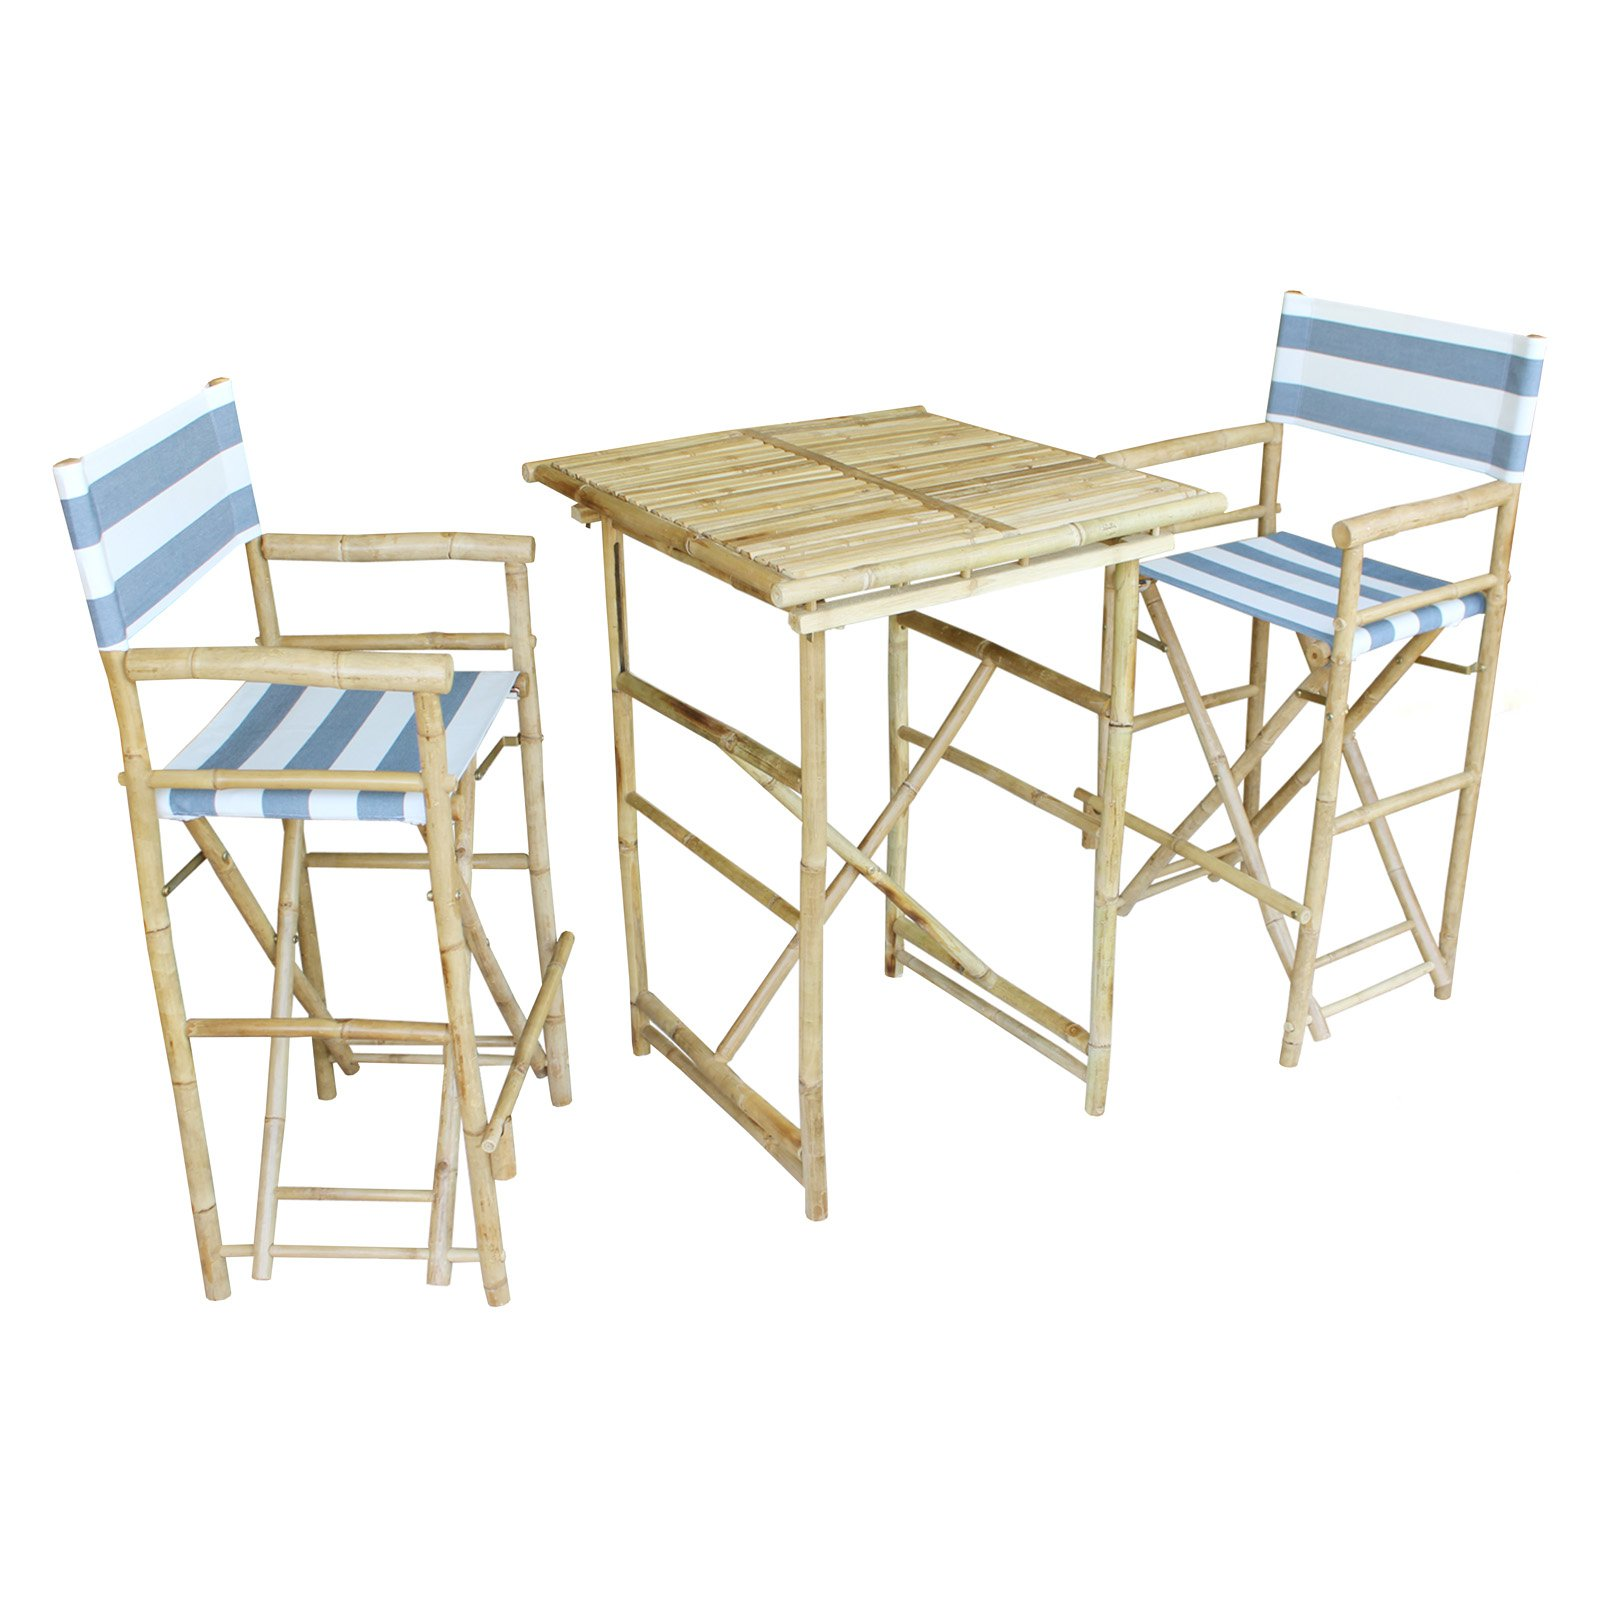 Zew Hand Crafted 3 Piece Square Folding Bamboo Bar Height Patio Dining Set